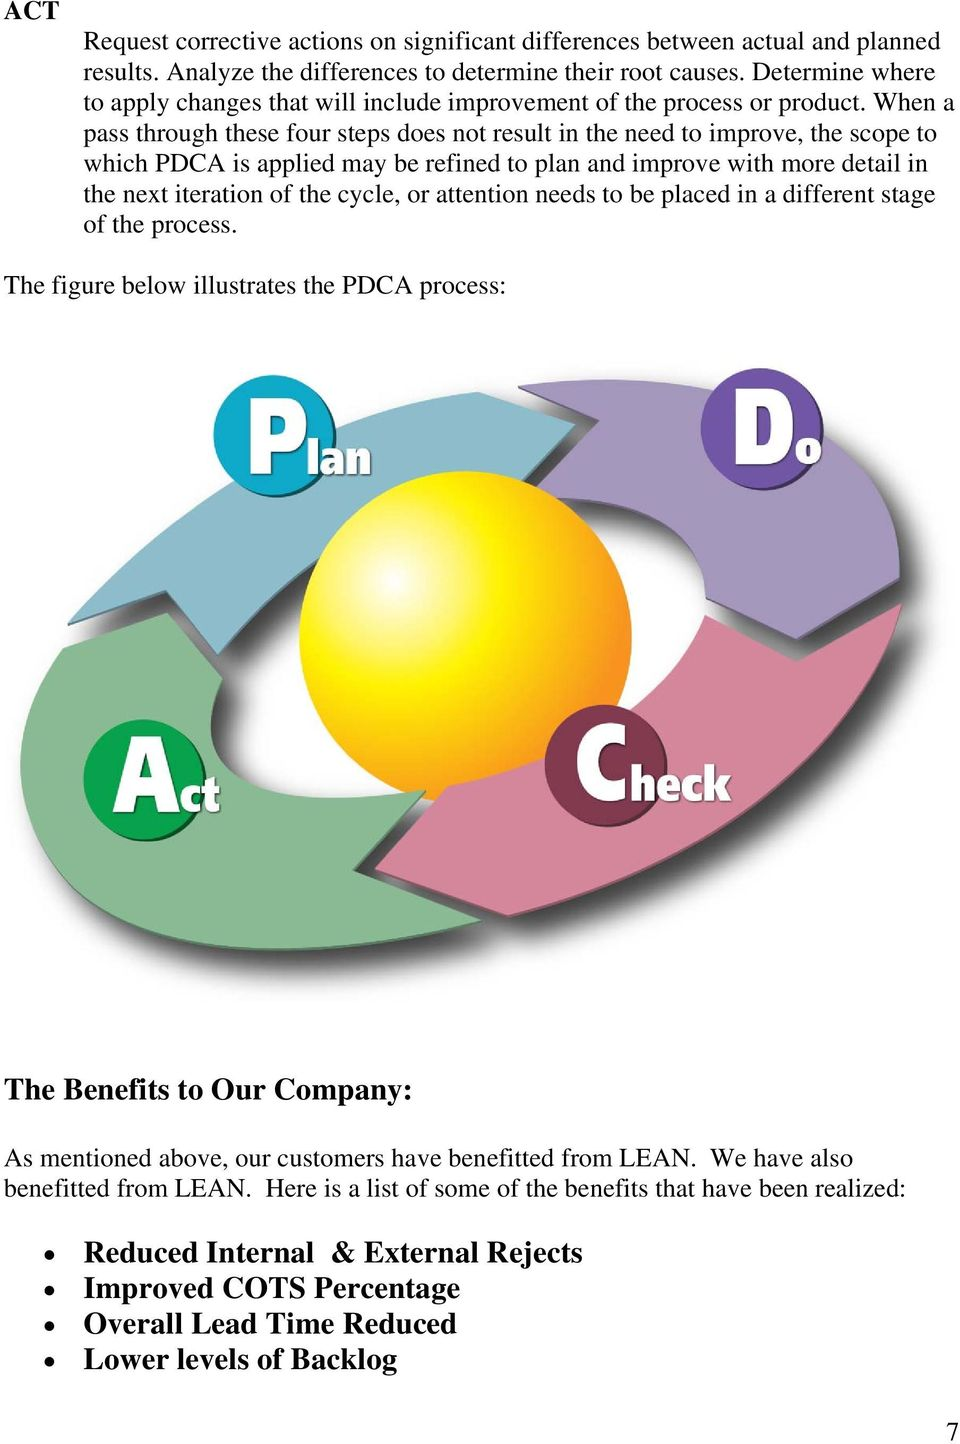 When a pass through these four steps does not result in the need to improve, the scope to which PDCA is applied may be refined to plan and improve with more detail in the next iteration of the cycle,